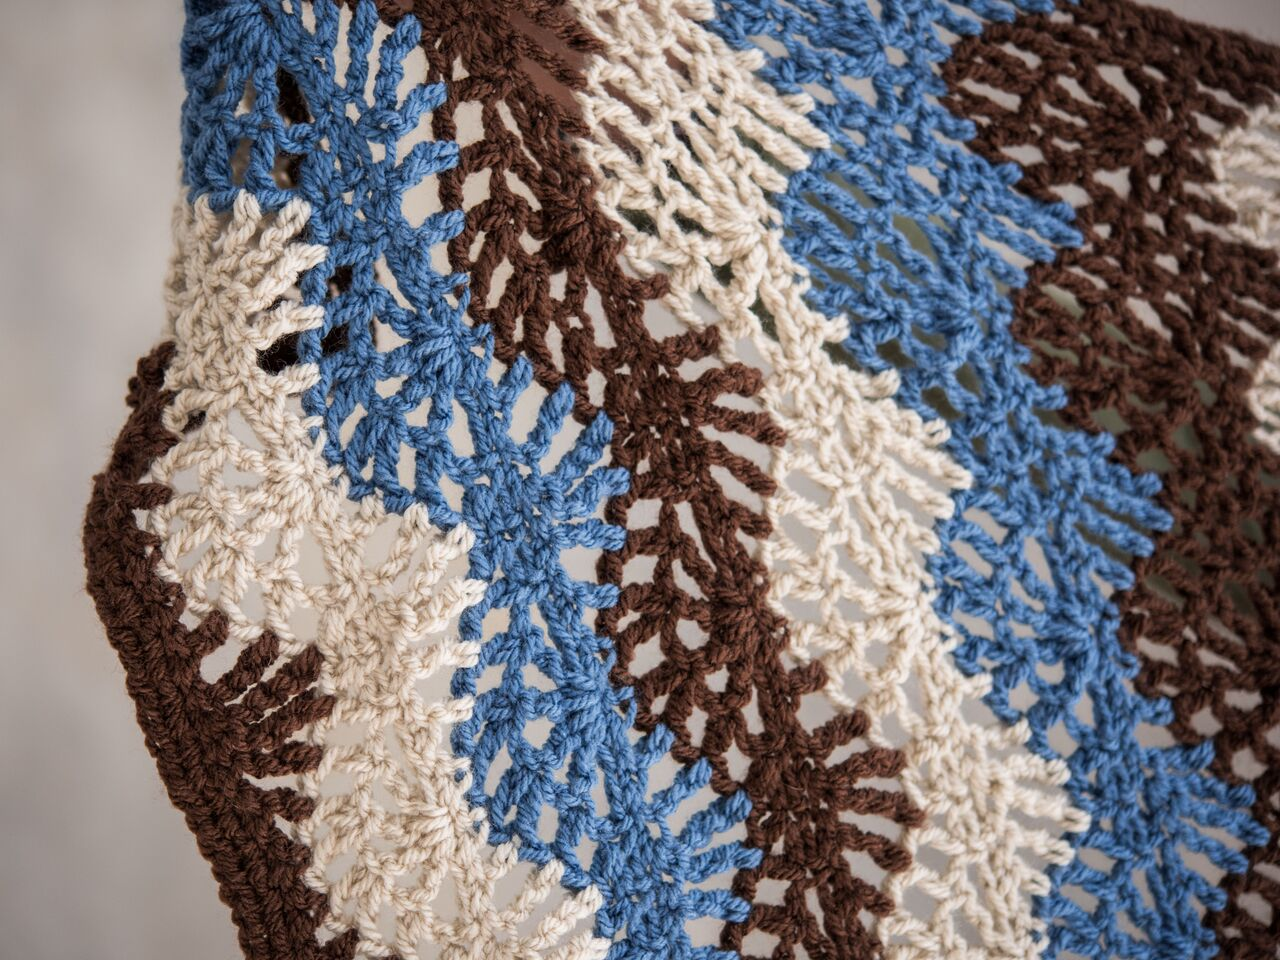 Ripple Lace Afghan Crochet Pattern By Crafting Friends Designs